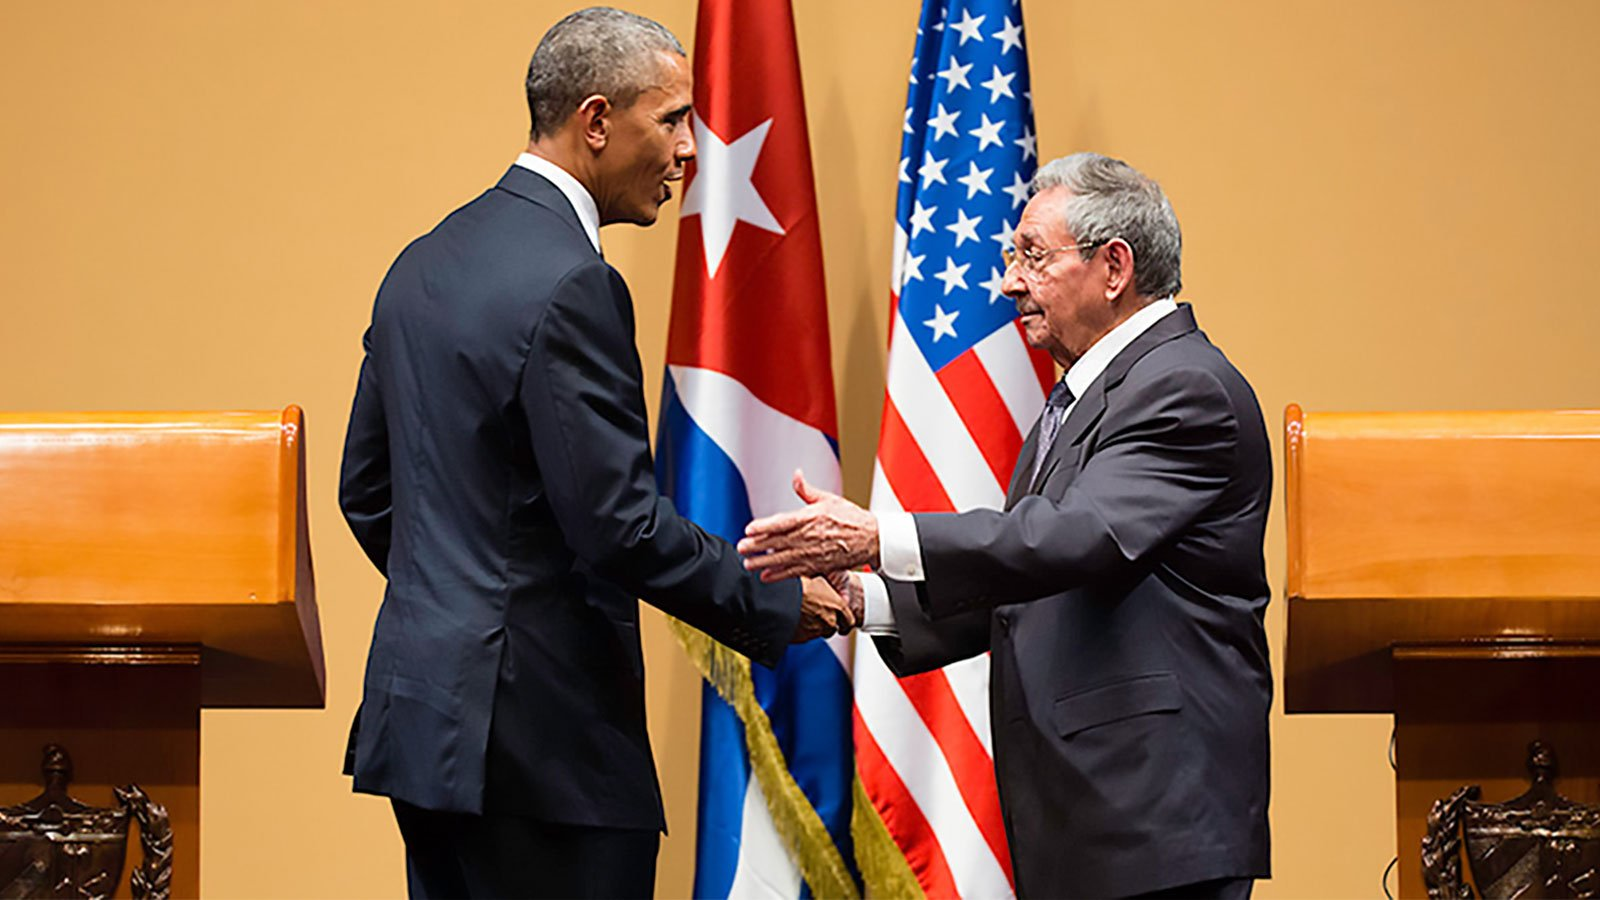 U.S. President Barack Obama and President of Cuba Raúl Castro